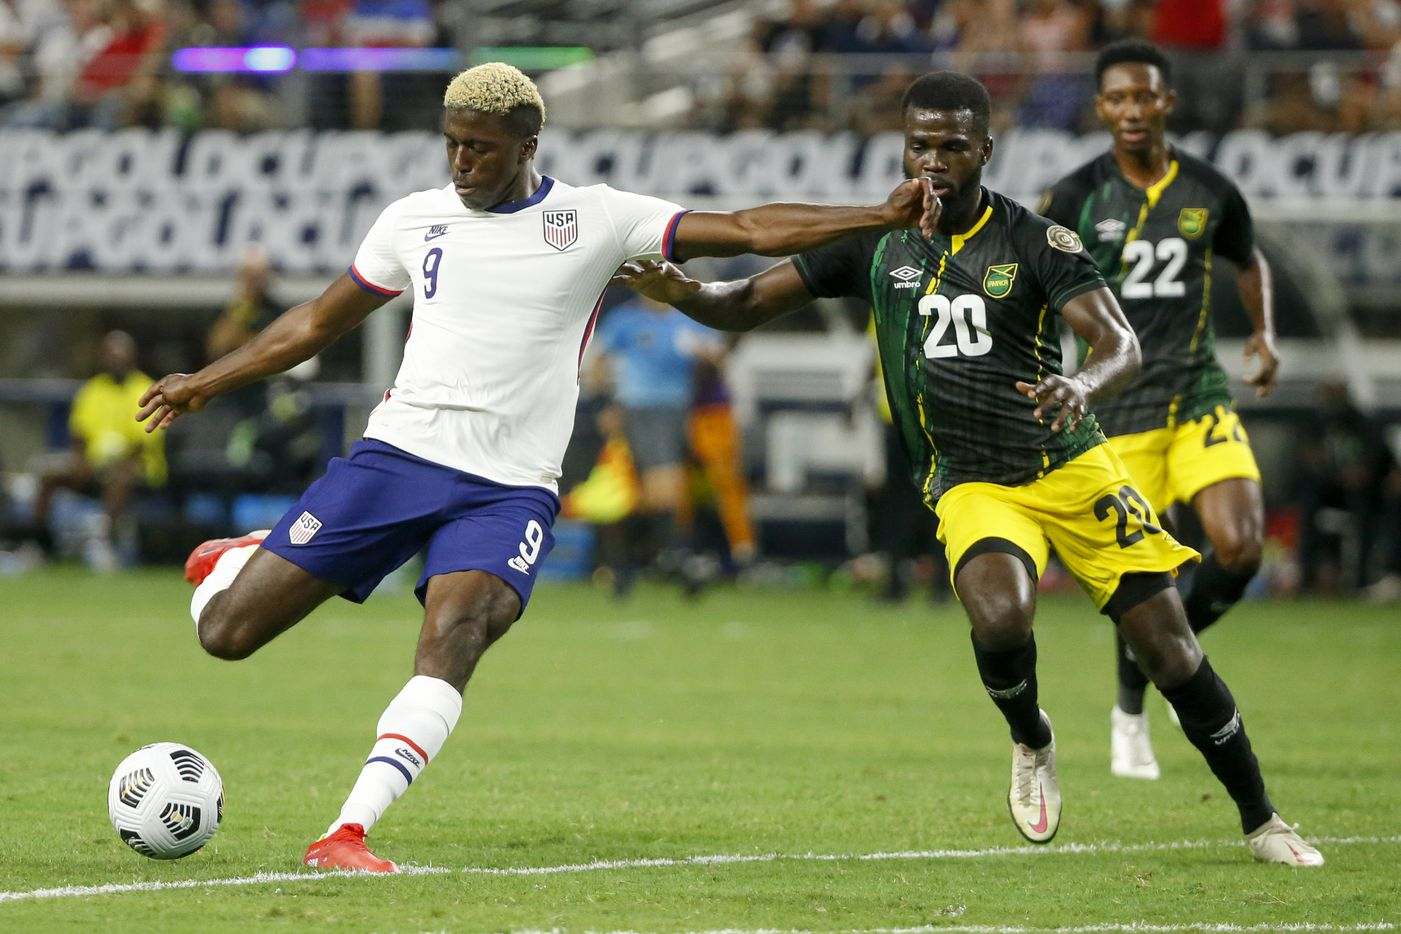 USA forward Gyasi Zardes (9) shoots the ball ahead of Jamaica defender Kemar Lawrence (20) during the second half of a CONCACAF Gold Cup quarterfinal soccer match at AT&T Stadium on Sunday, July 25, 2021, in Arlington. (Elias Valverde II/The Dallas Morning News)